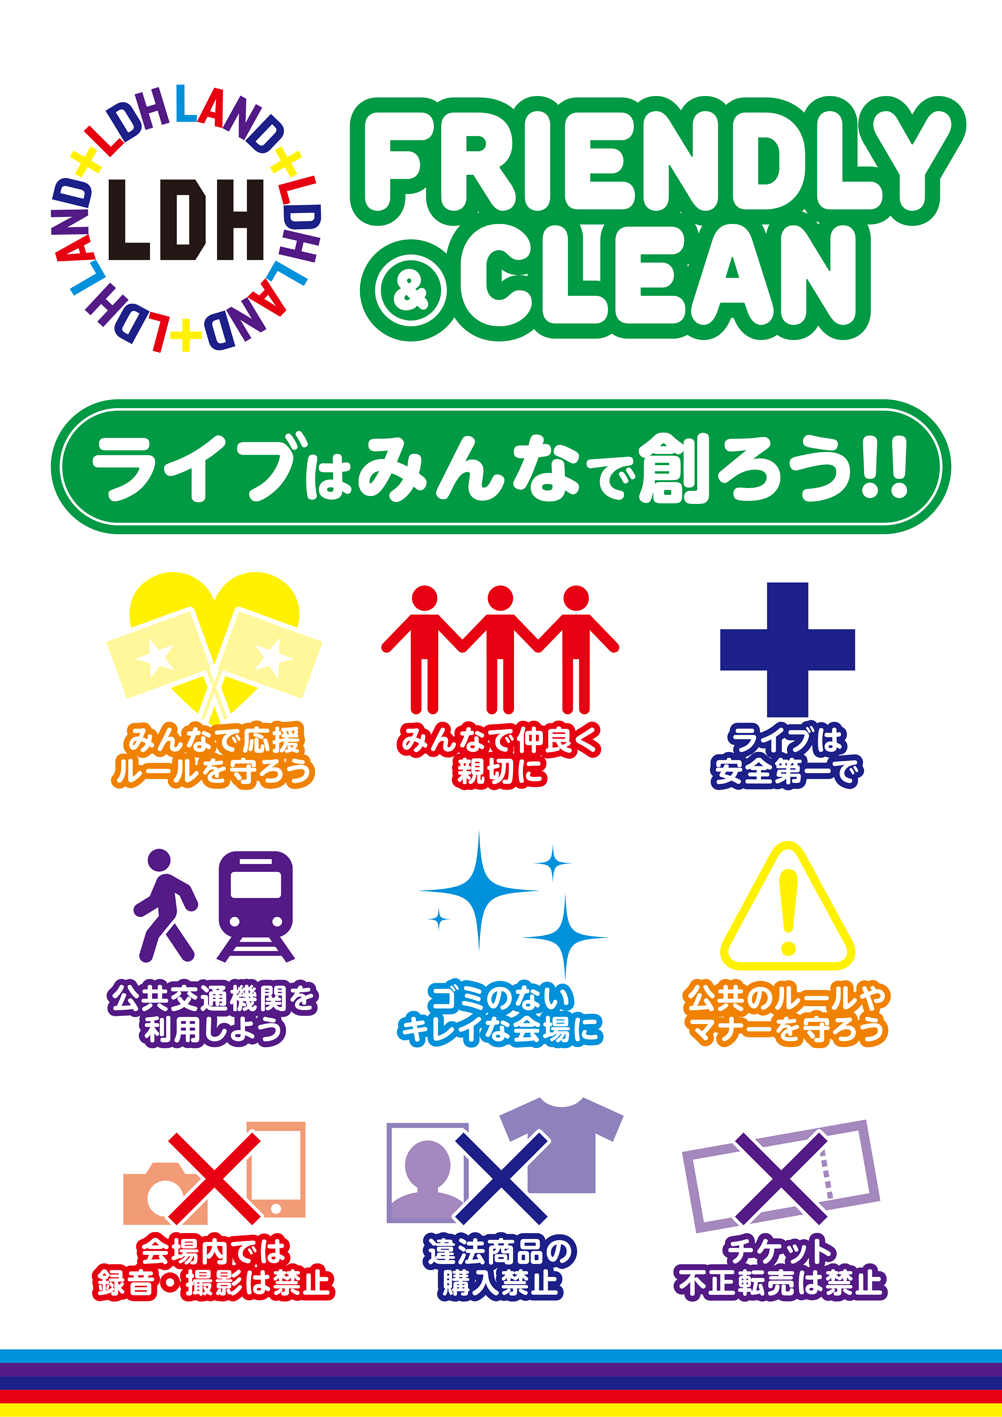 LDH LAND FRIENDLY & CLEAN